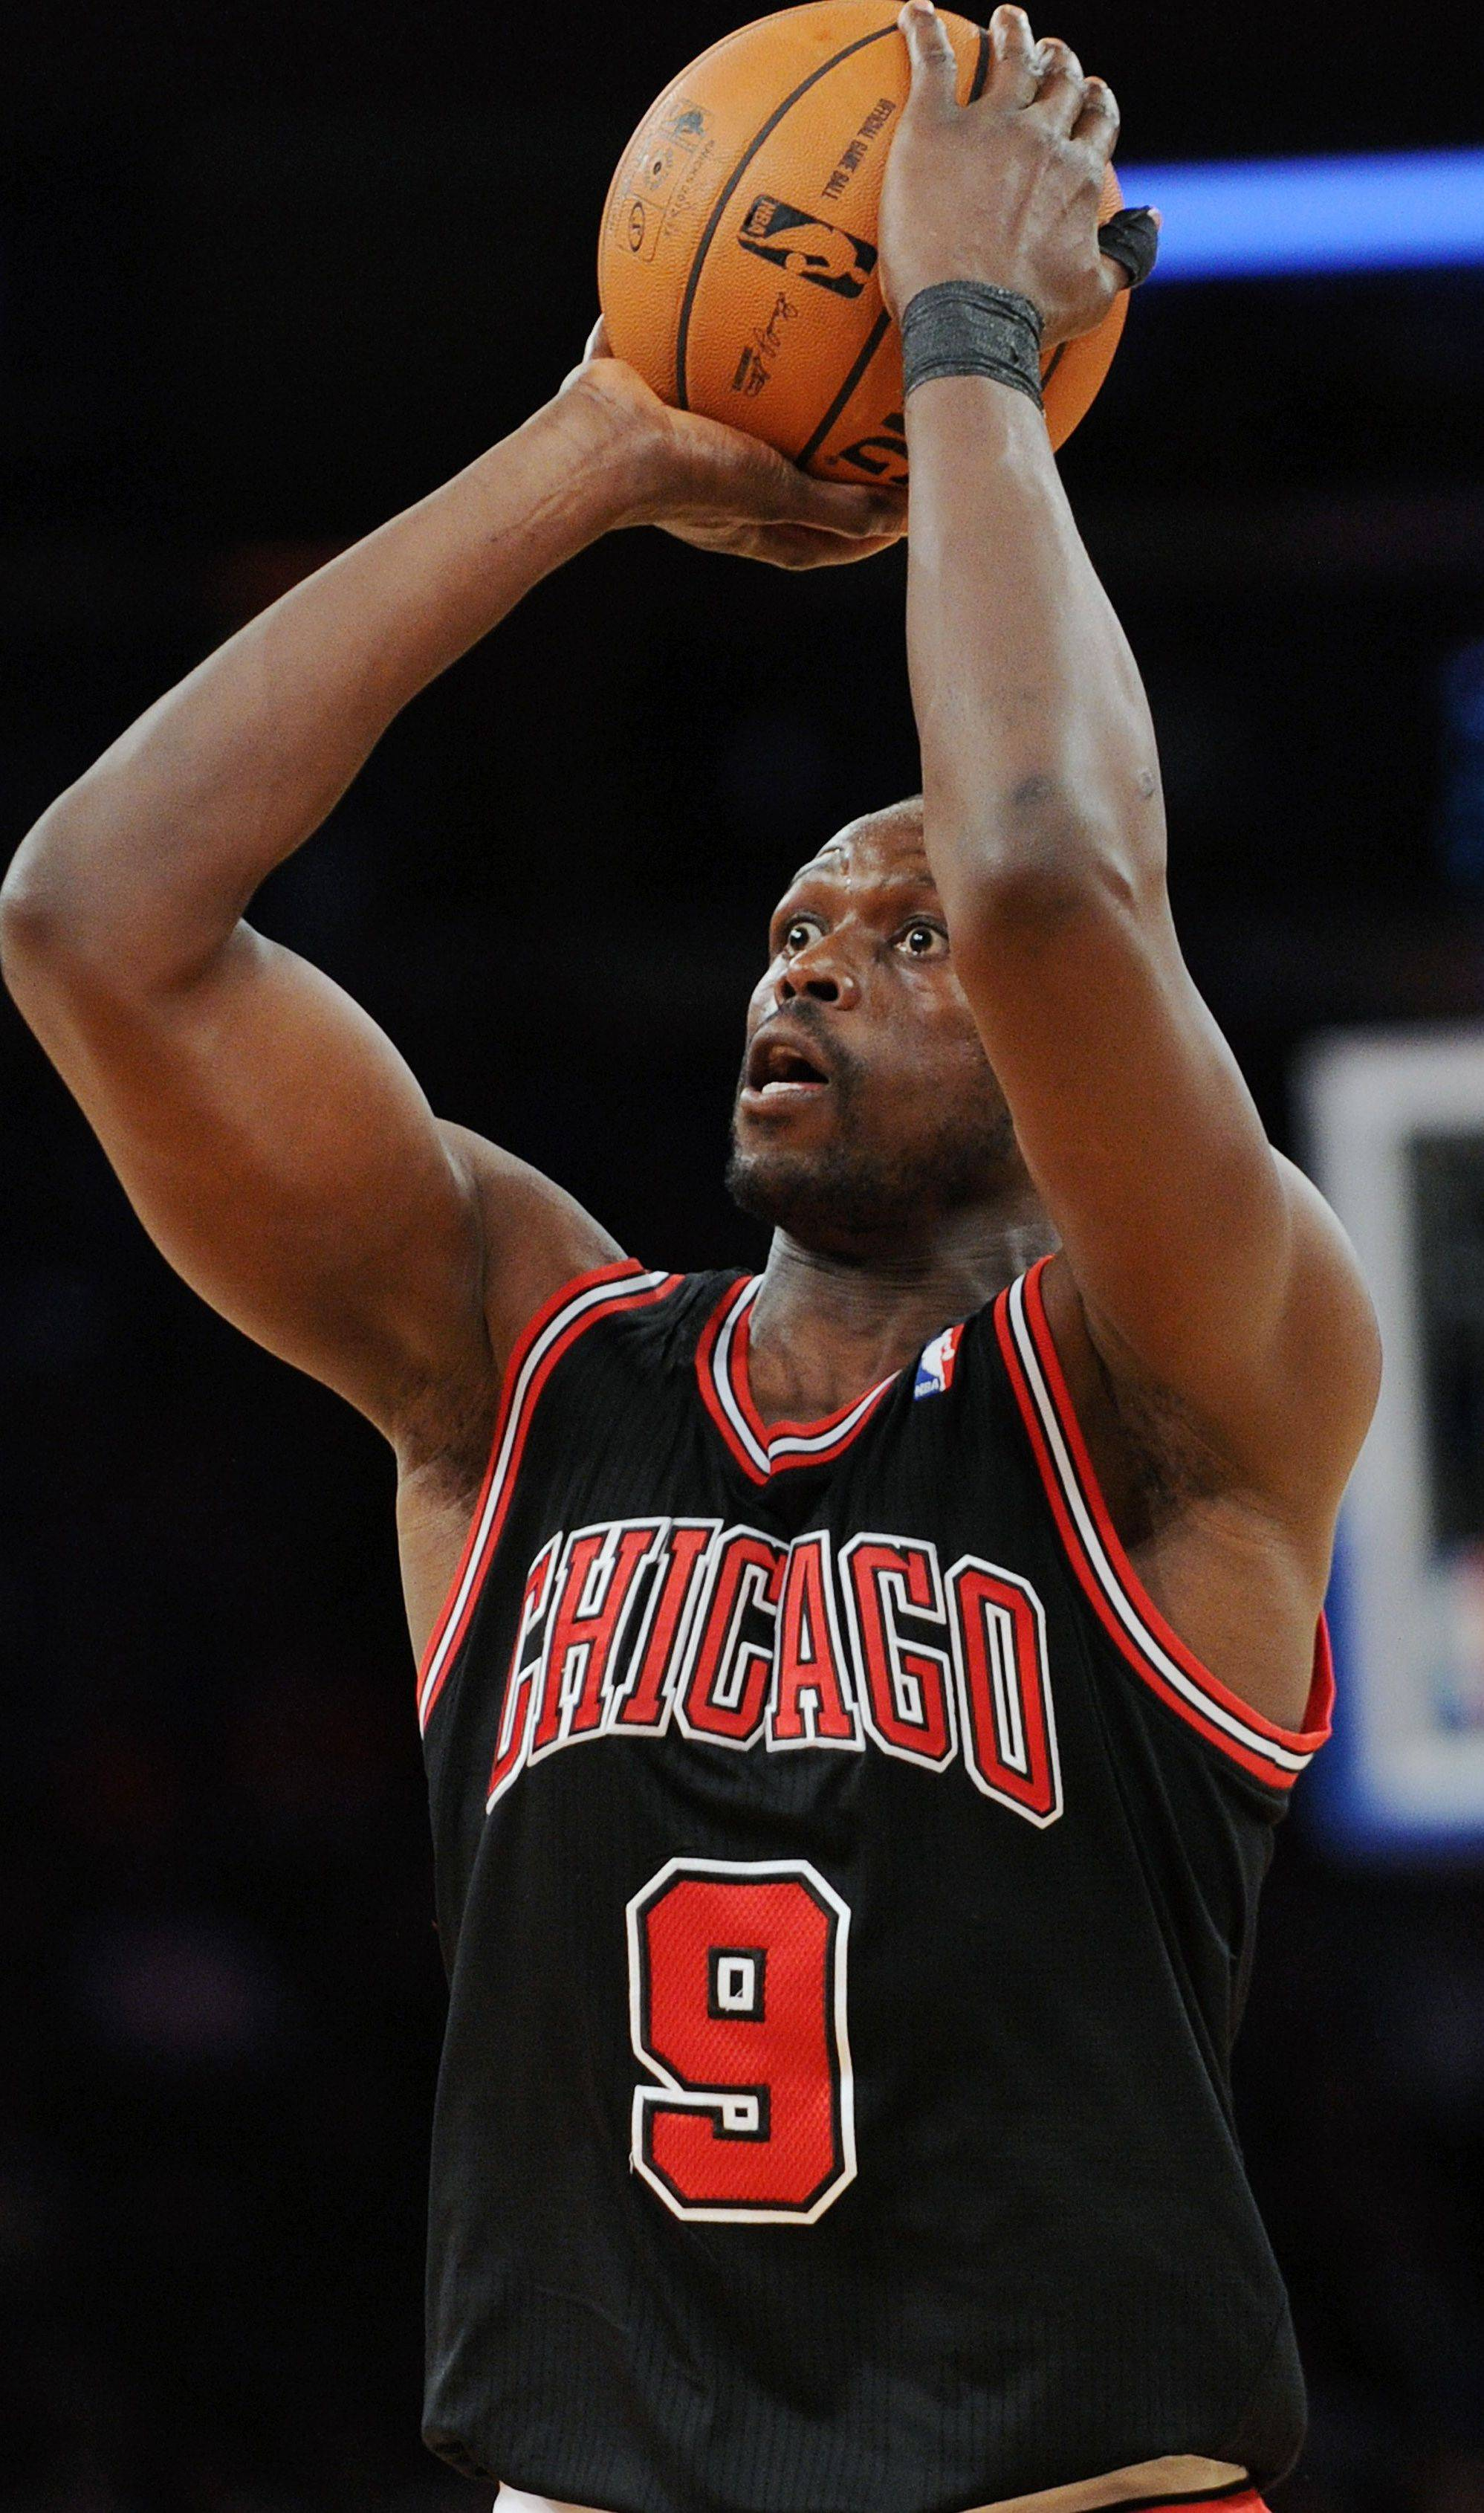 Luol Deng, who made his first all-star appearance last year, has the best statistics of the three Bulls who might make the all-star team as reserves.